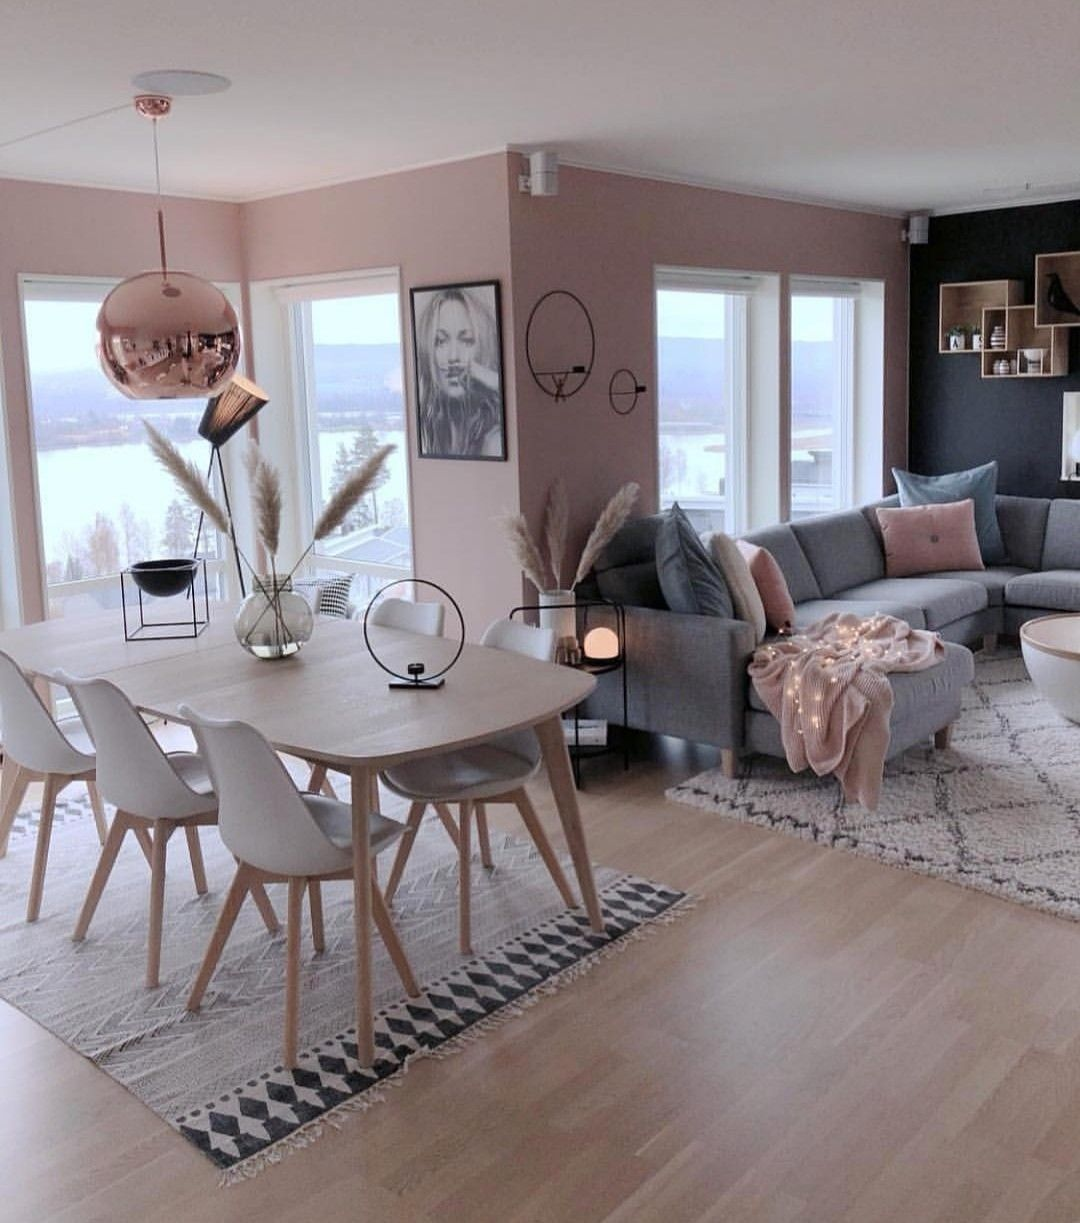 20+ Grey and pink living room ideas ideas in 2021